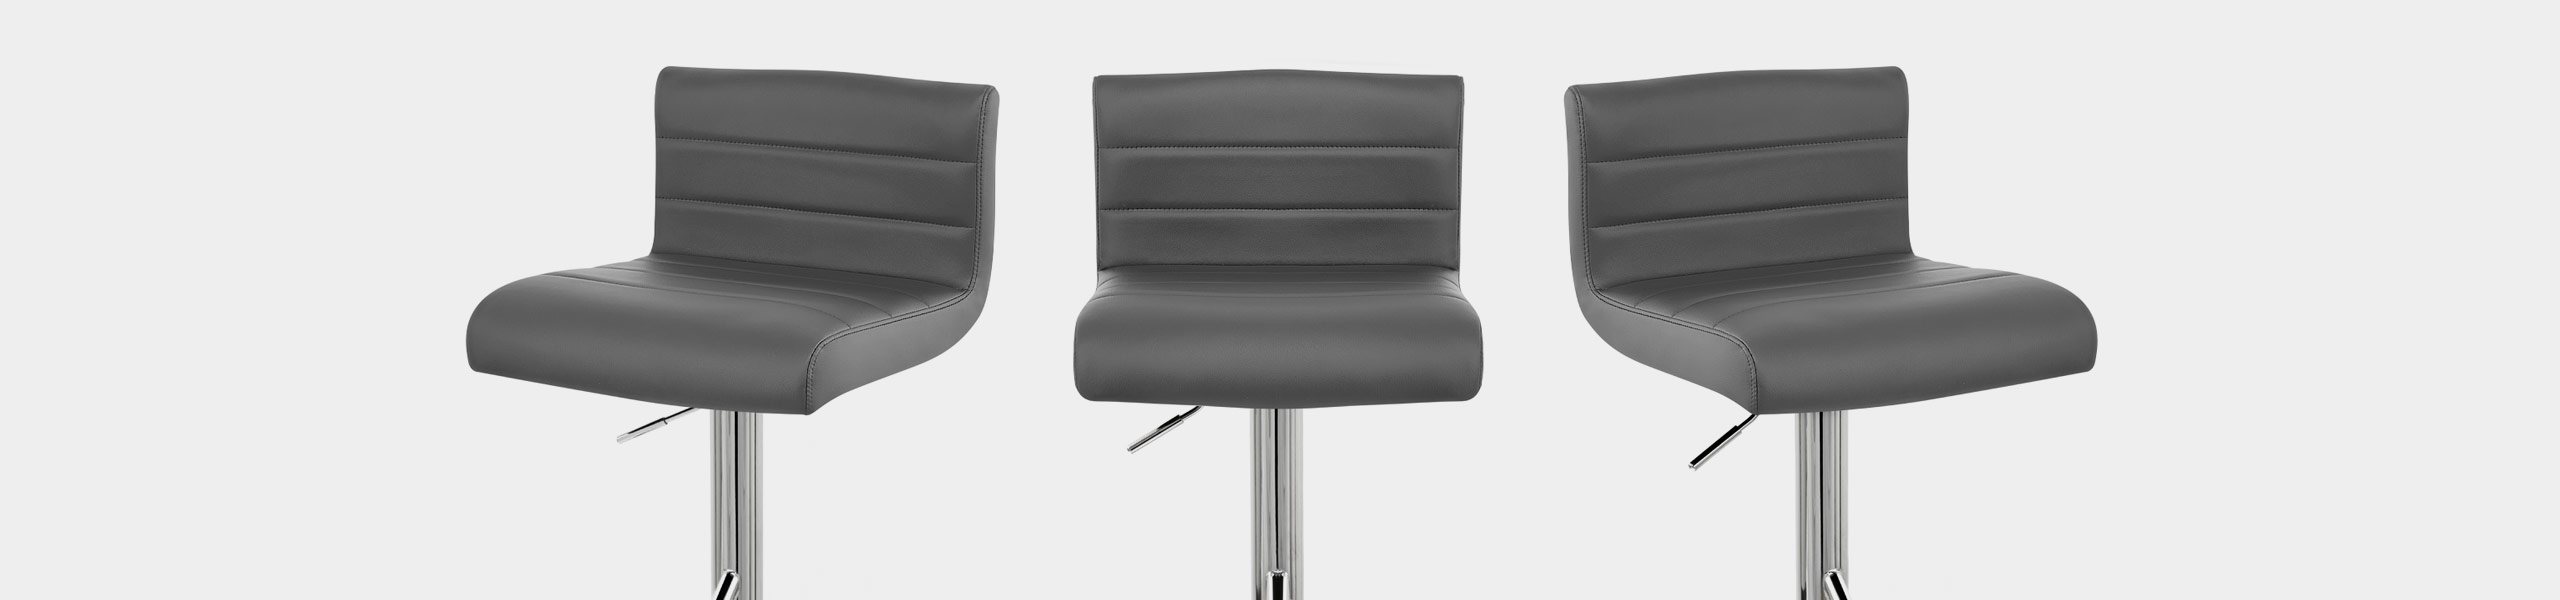 Style Bar Stool Grey Video Banner